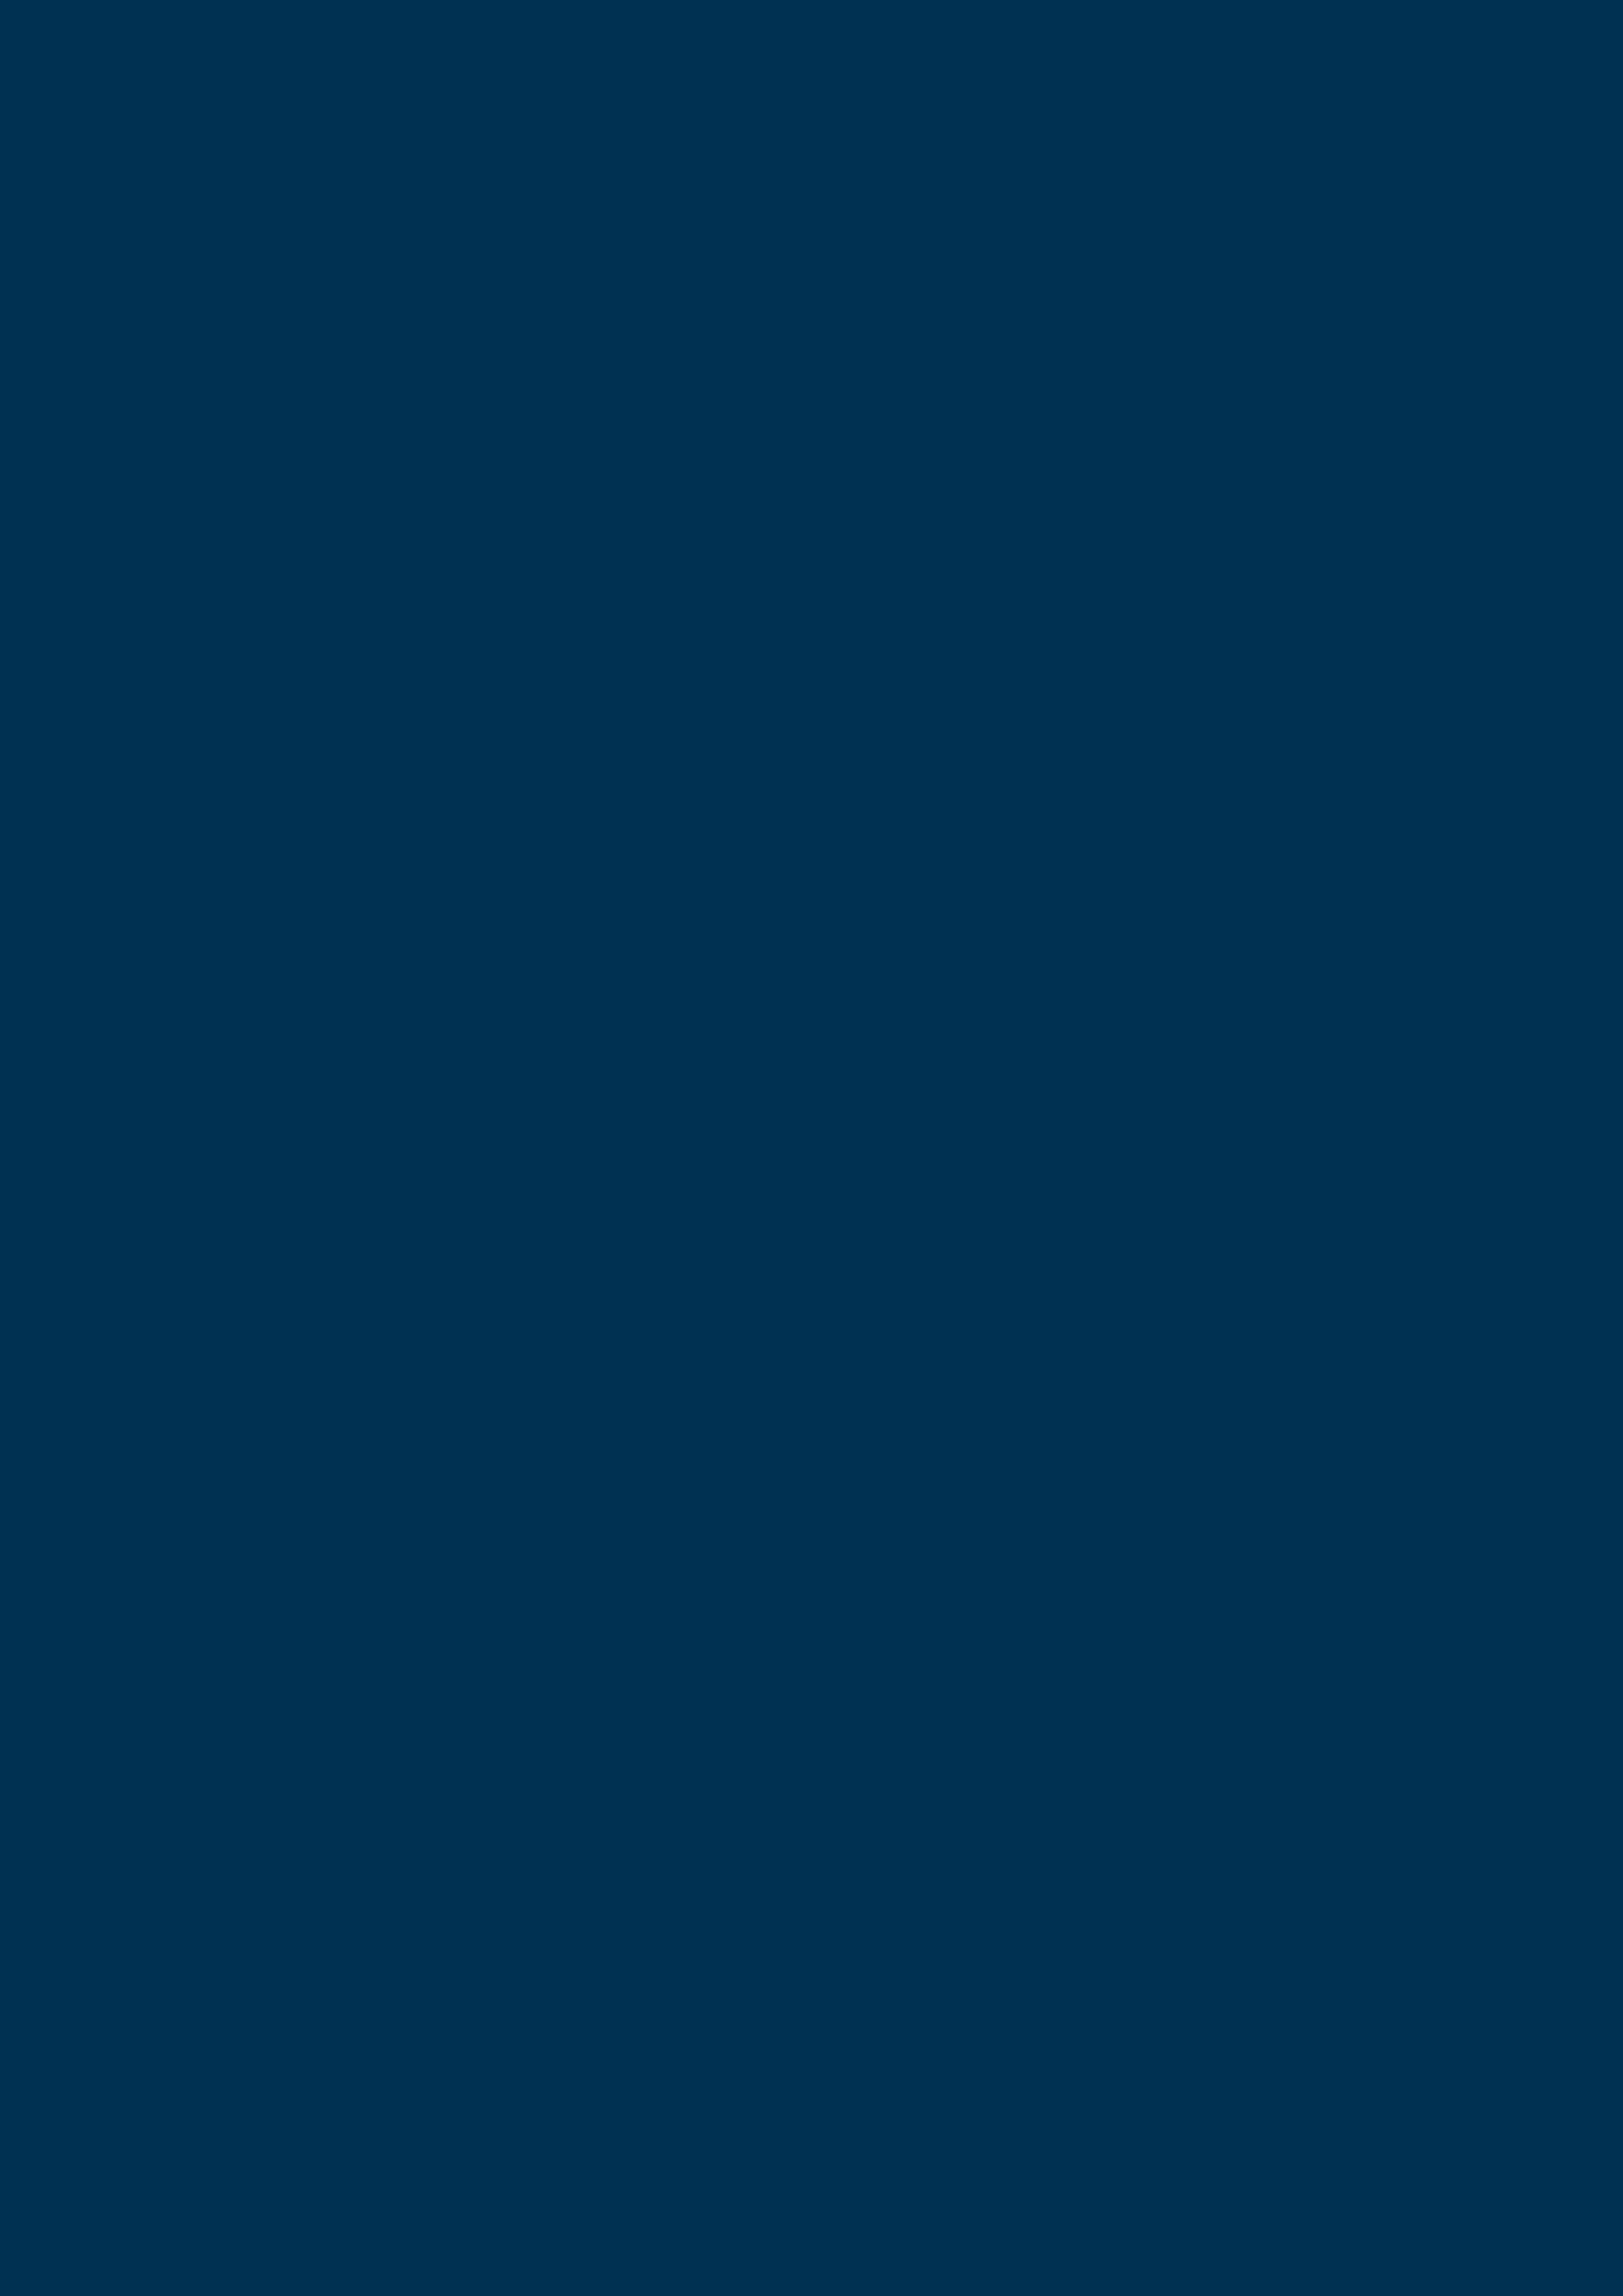 2480x3508 Prussian Blue Solid Color Background